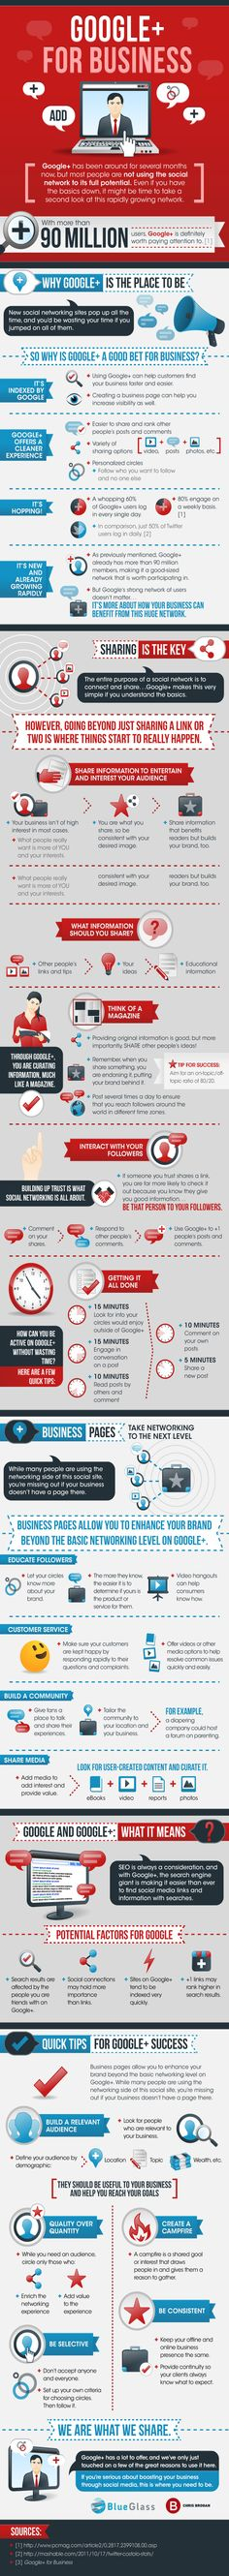 Why is Google+ the place for your Business? #INFOGRAPHIC